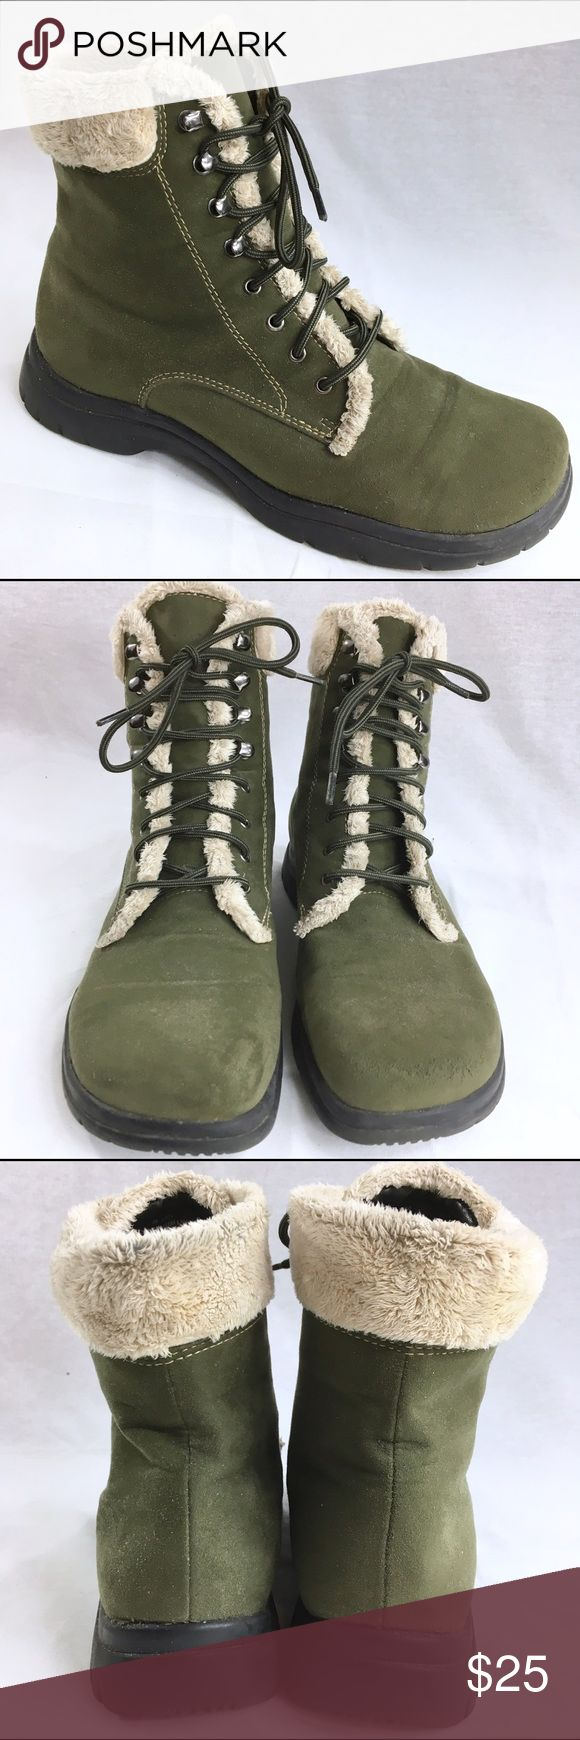 me too LINK-Q Olive Army Green Hiking Boots Sz. 9M These are lightweight hiking boots. They are in fairly good condition. They have been gently pre-loved.  They are not insulated. They are actually better for a fashionable look rather than keeping warm. me too Shoes